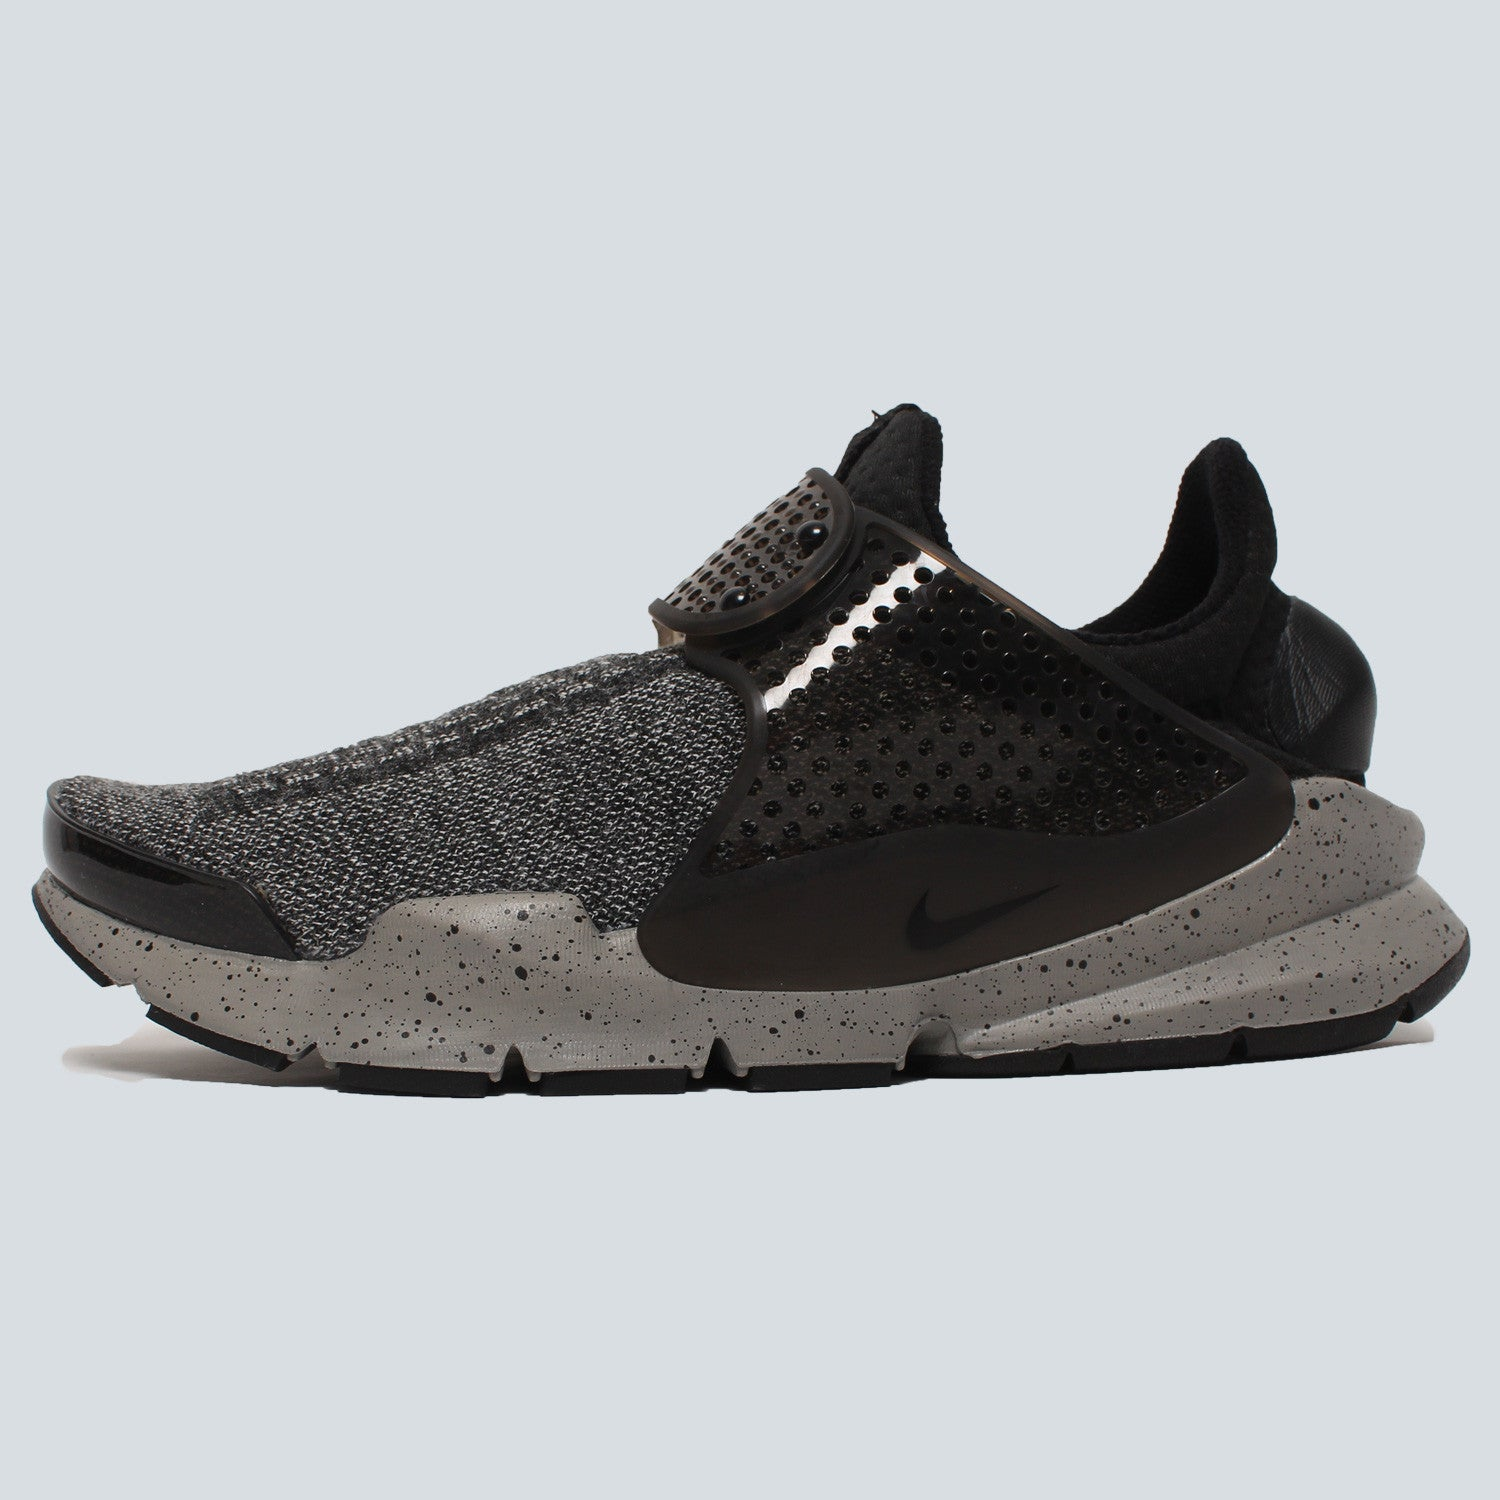 sports shoes 4653a 8ef65 Nike - Sock Dart SE Premium - Black/Dust White/University Red